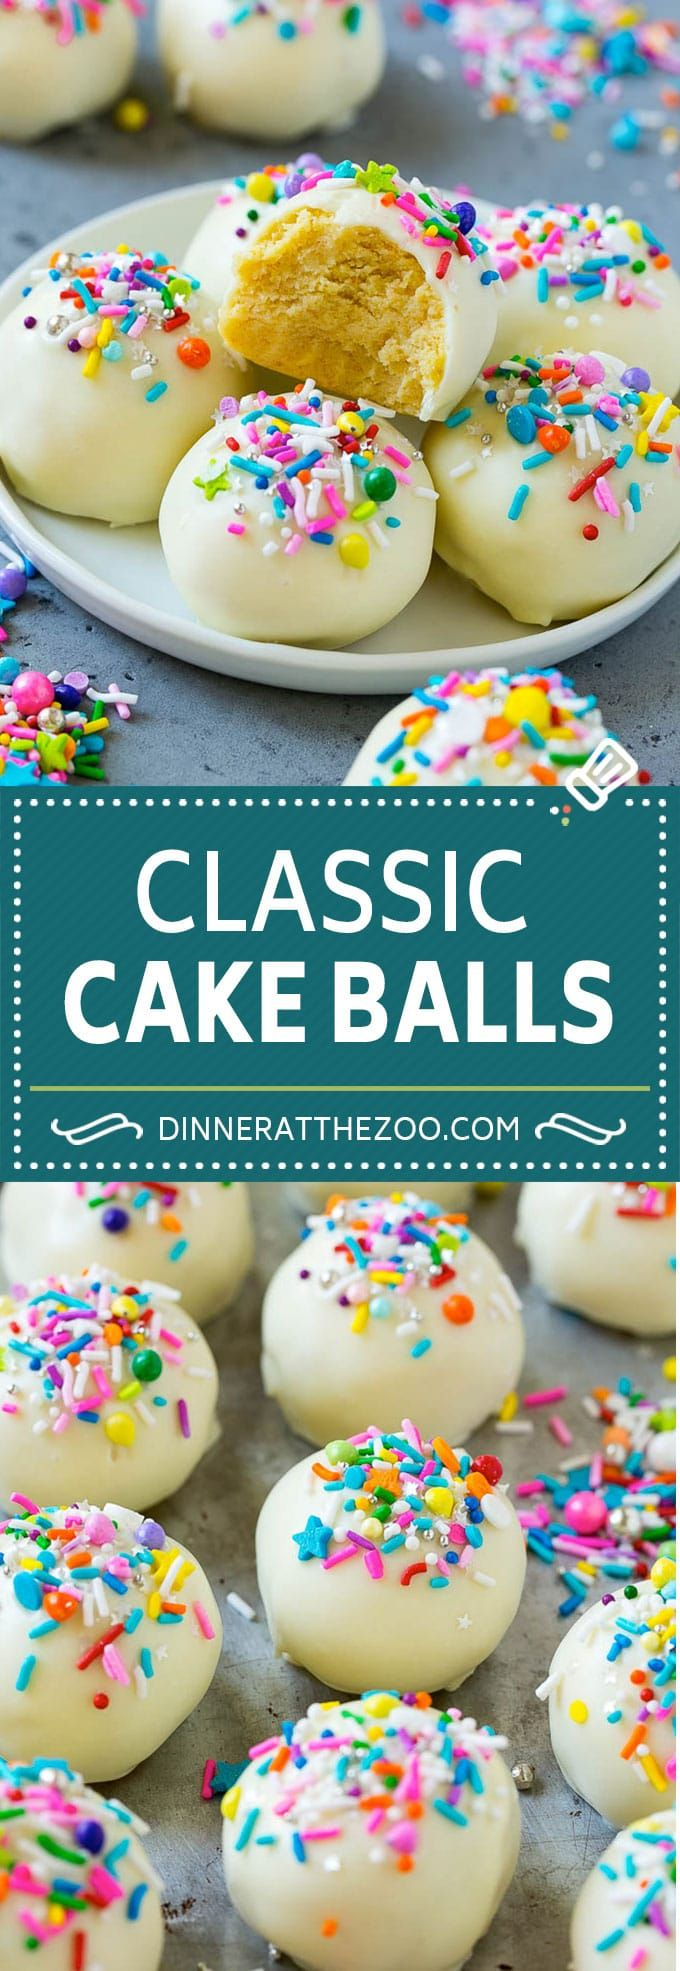 Cake Balls Recipe - Dinner at the Zoo